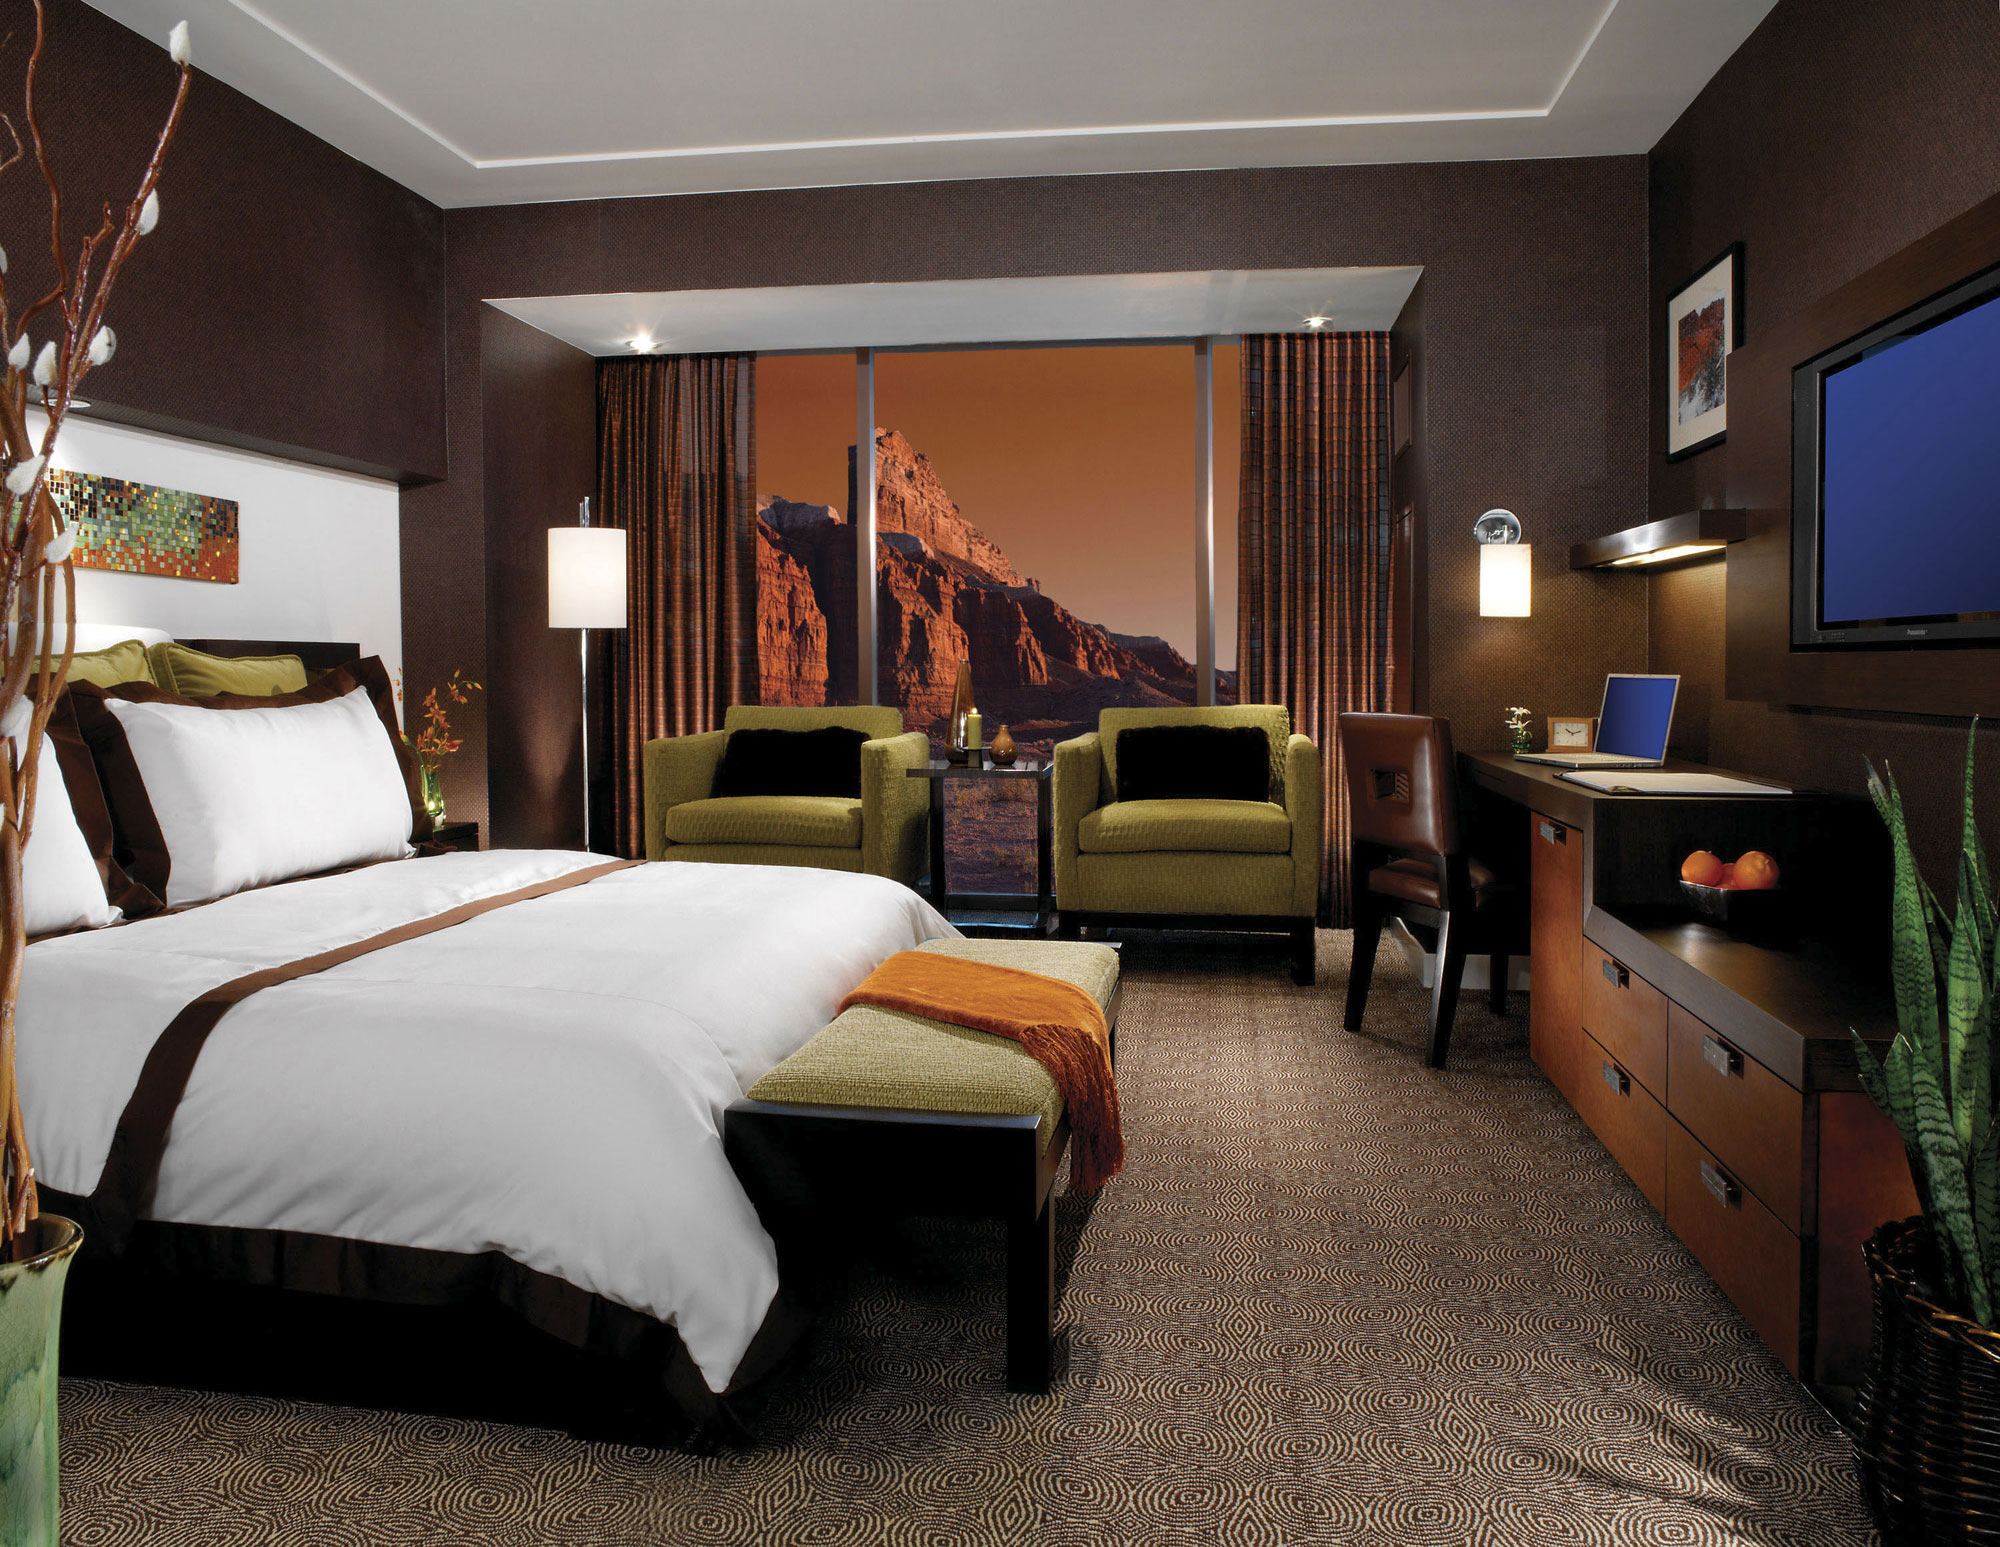 The best vegas rooms with a view las vegas blogs for Family room accommodation